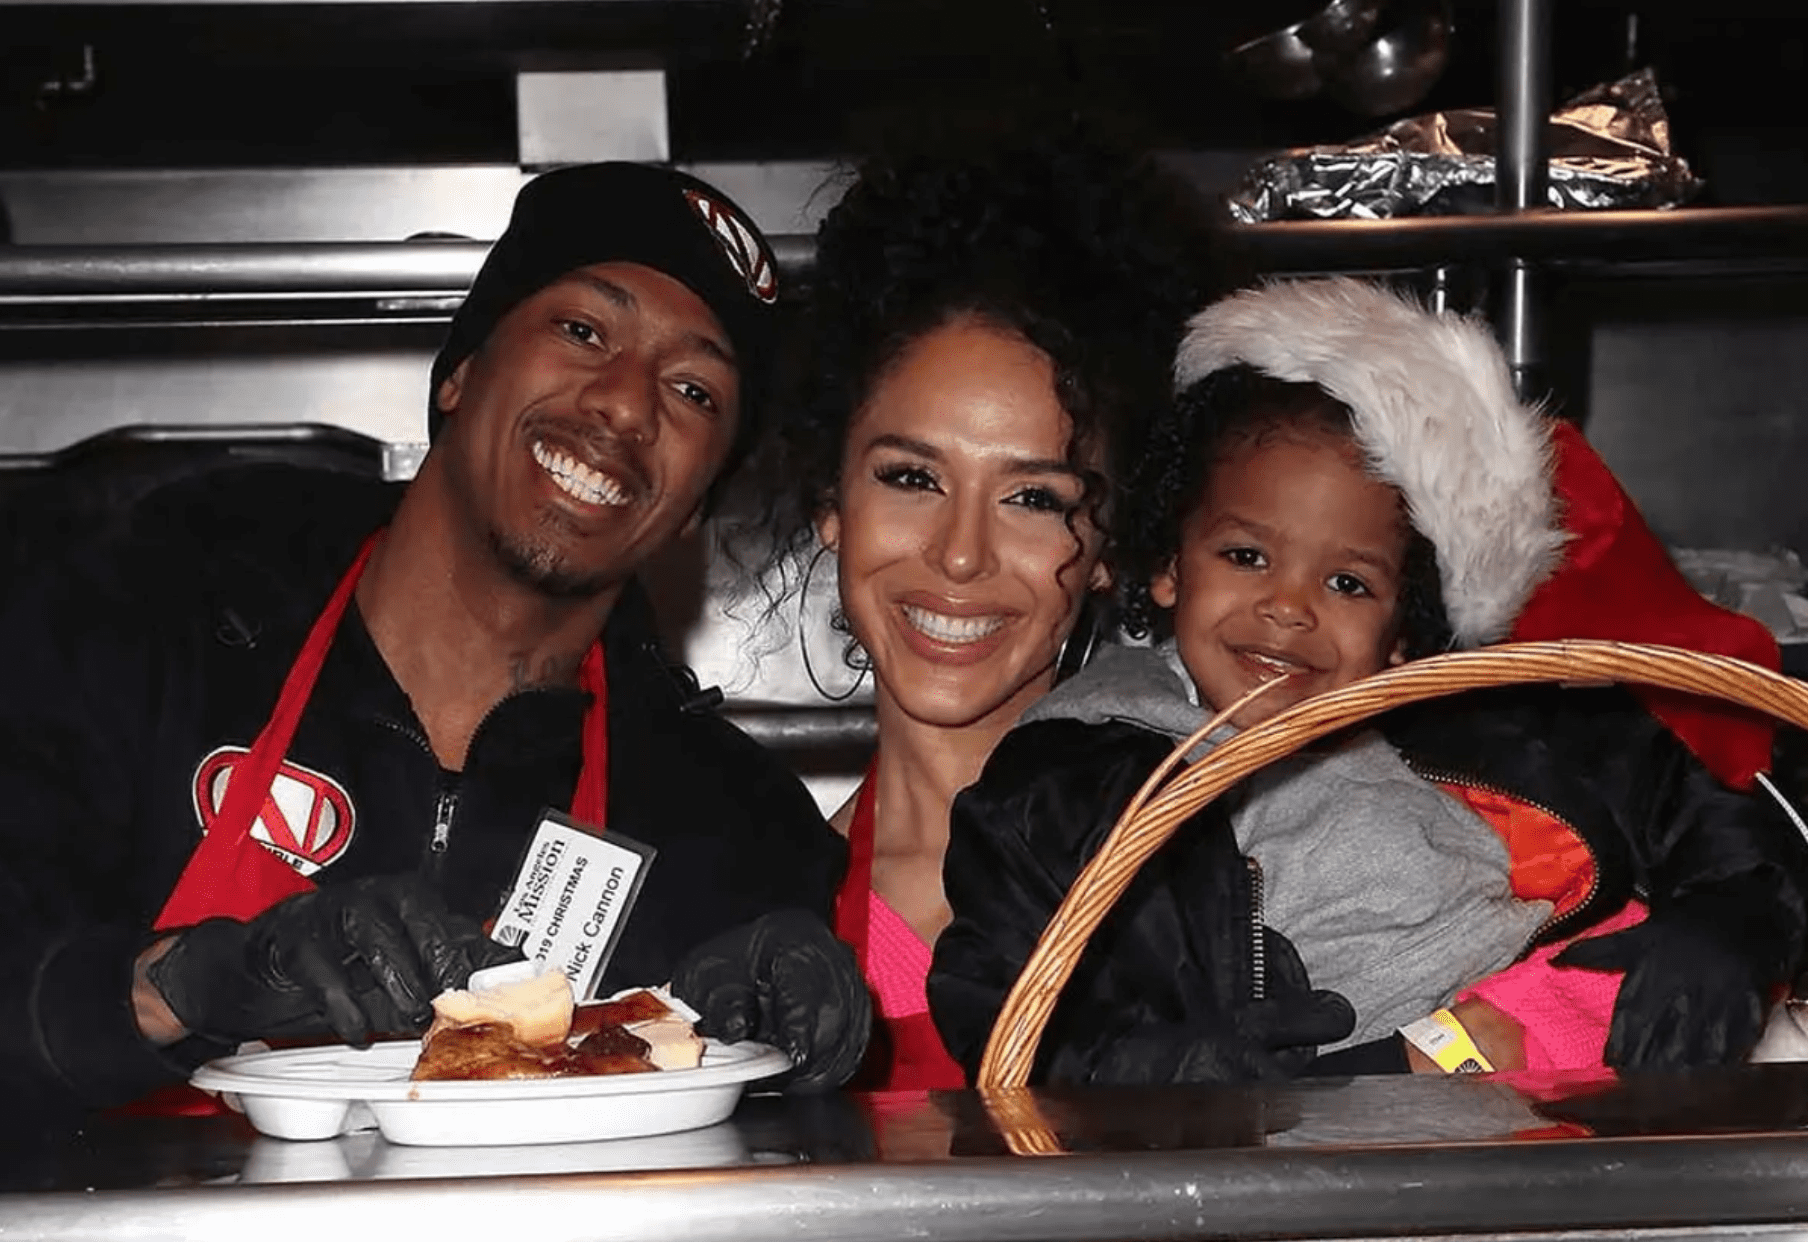 """Nick Cannon and Brittany Bell with their son Golden Cannon attending the """"Christmas Celebration on Skid Row"""" at the Los Angeles Mission in December 2019. 